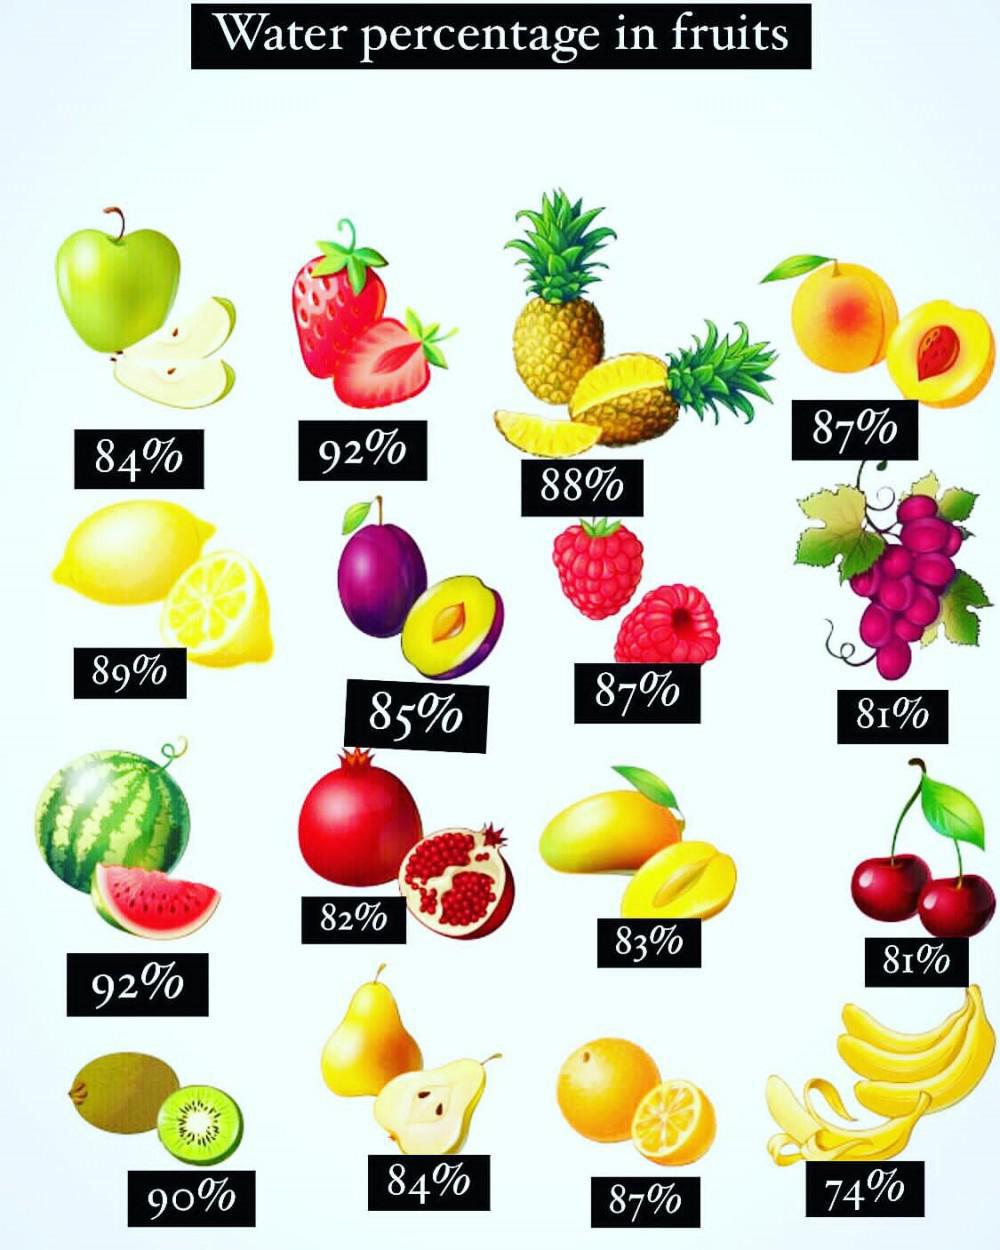 Percentage of water content in different fruit